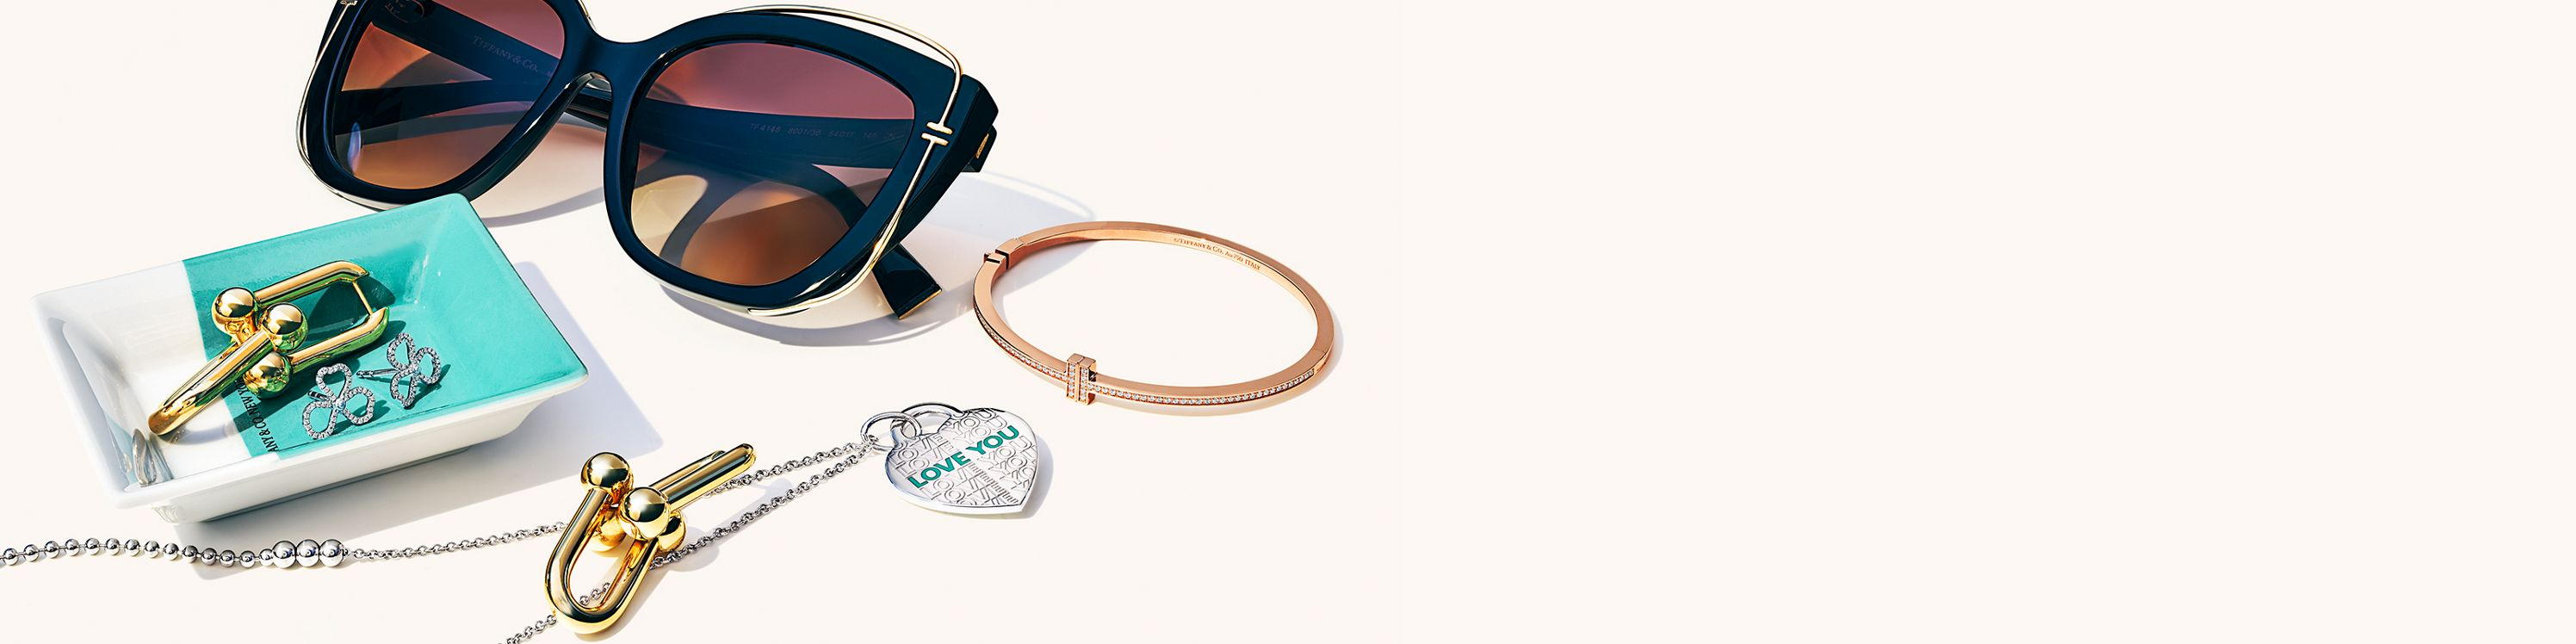 Tiffany & Co. Gift Ideas for Her